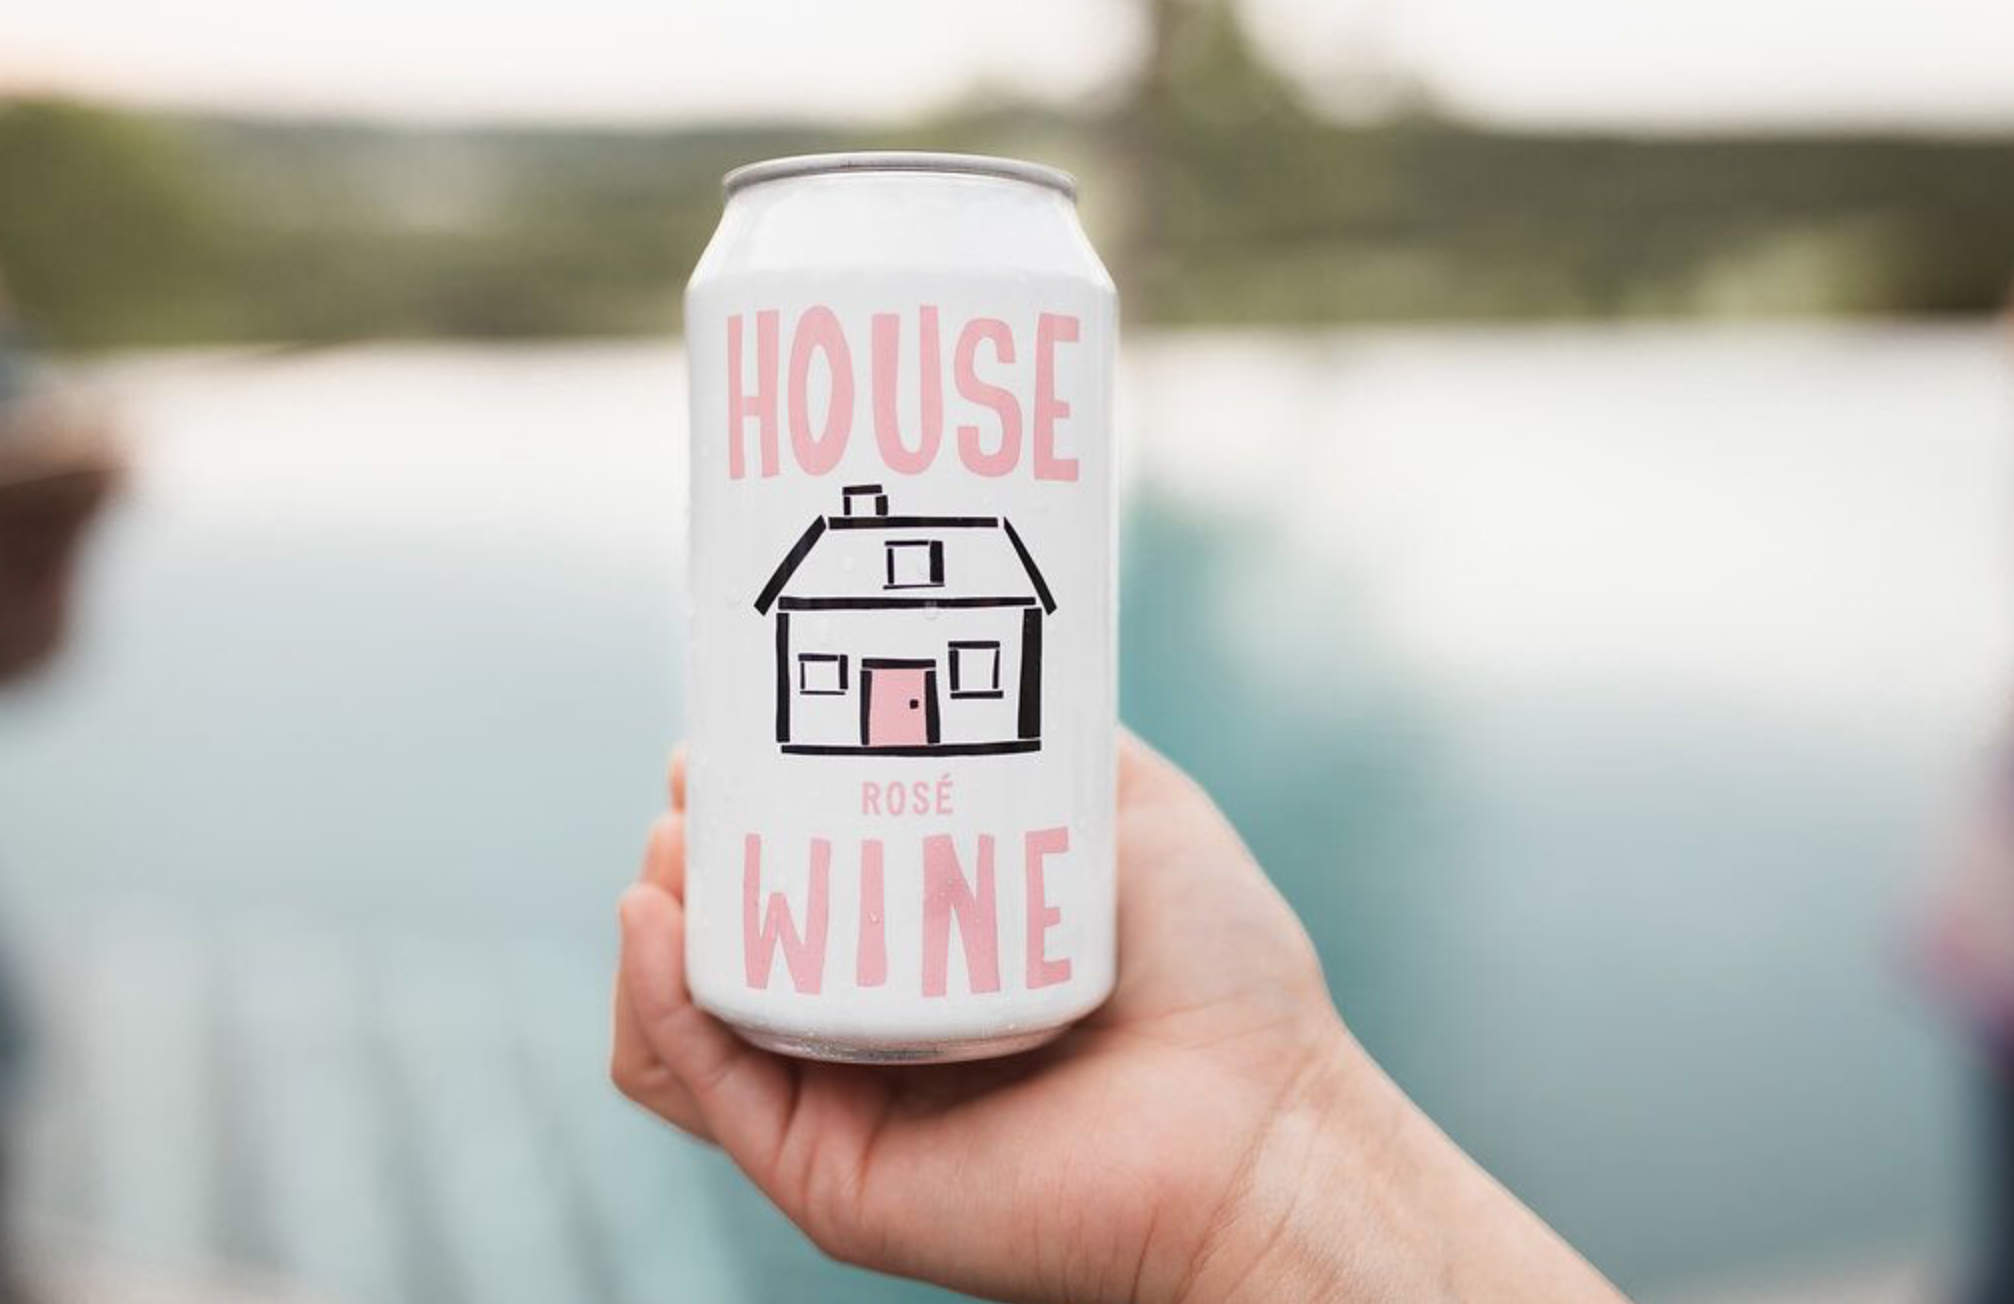 House Wine Is A Good Thing   You know you love to sip on the good stuff, but what about the every day stuff? We show you the good AND the inexpensive.